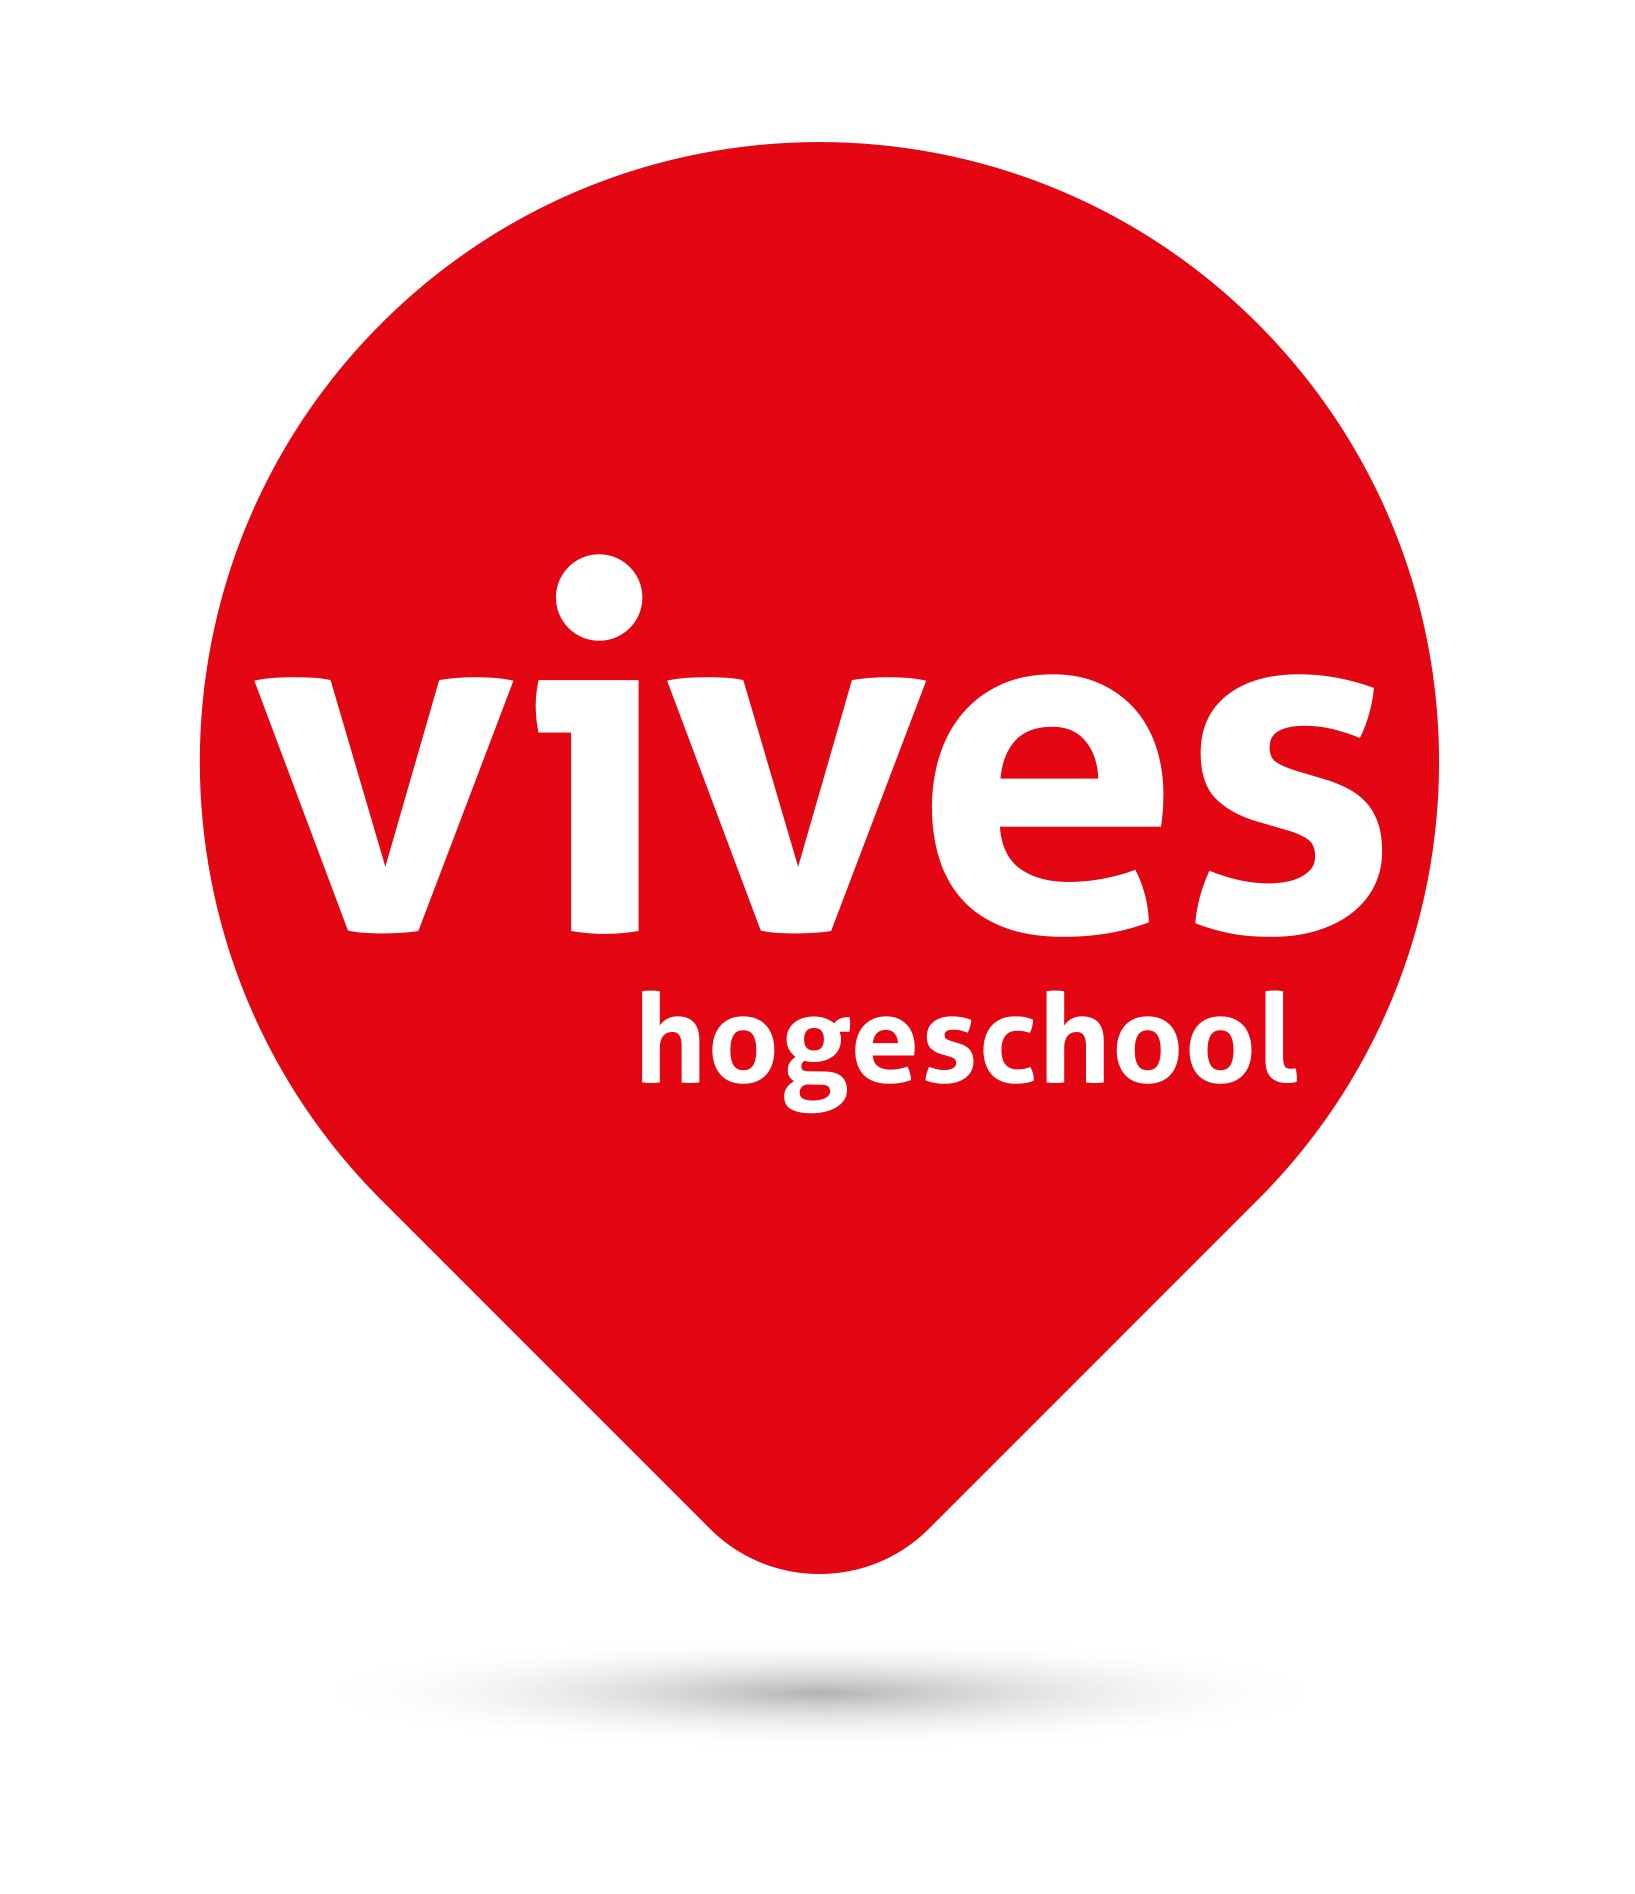 VIVES LOGO 2 COLORS HOGESCHOOL 07